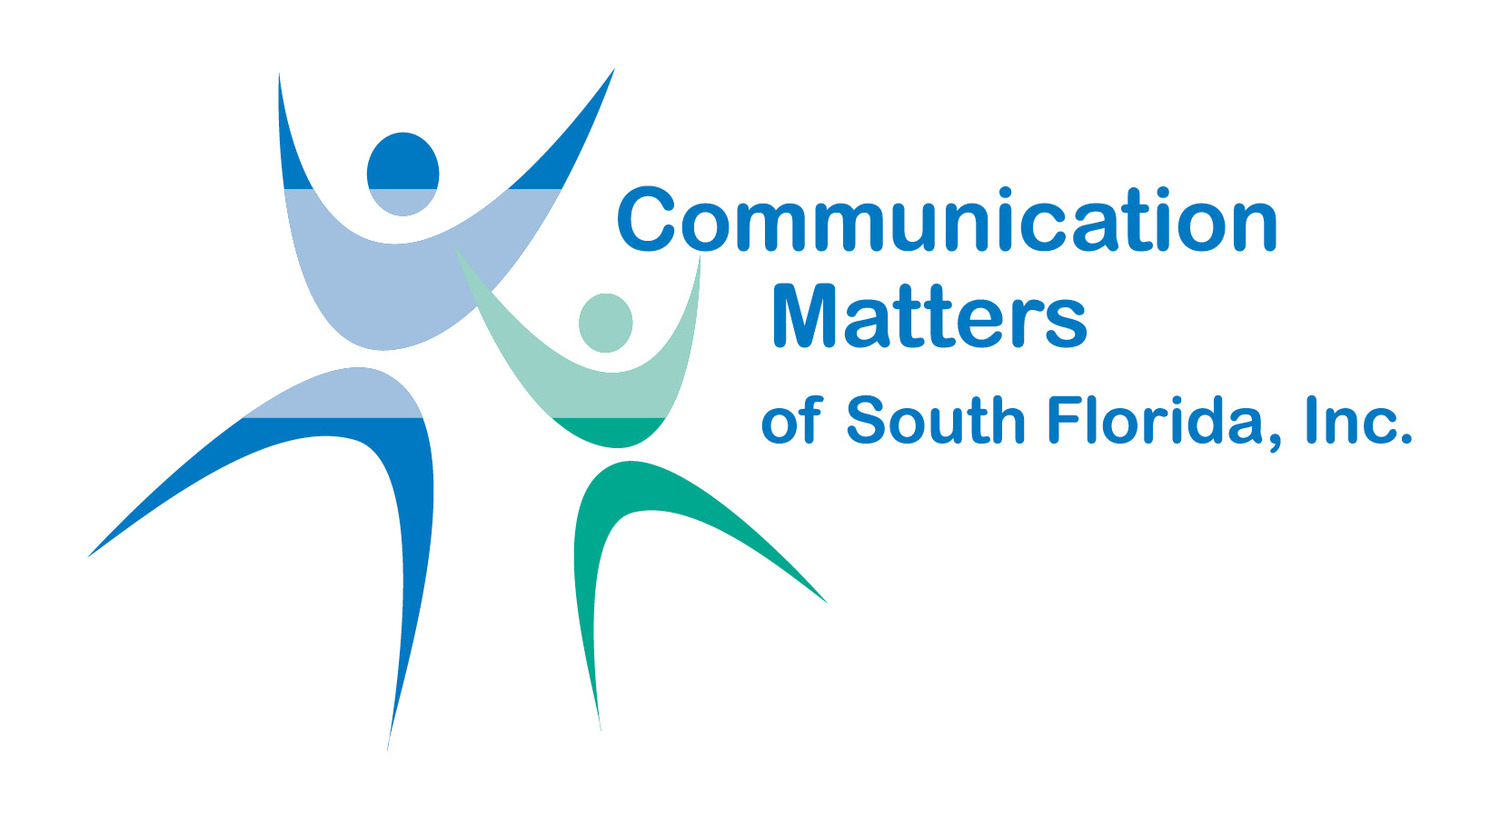 Communications Matters of South Florida